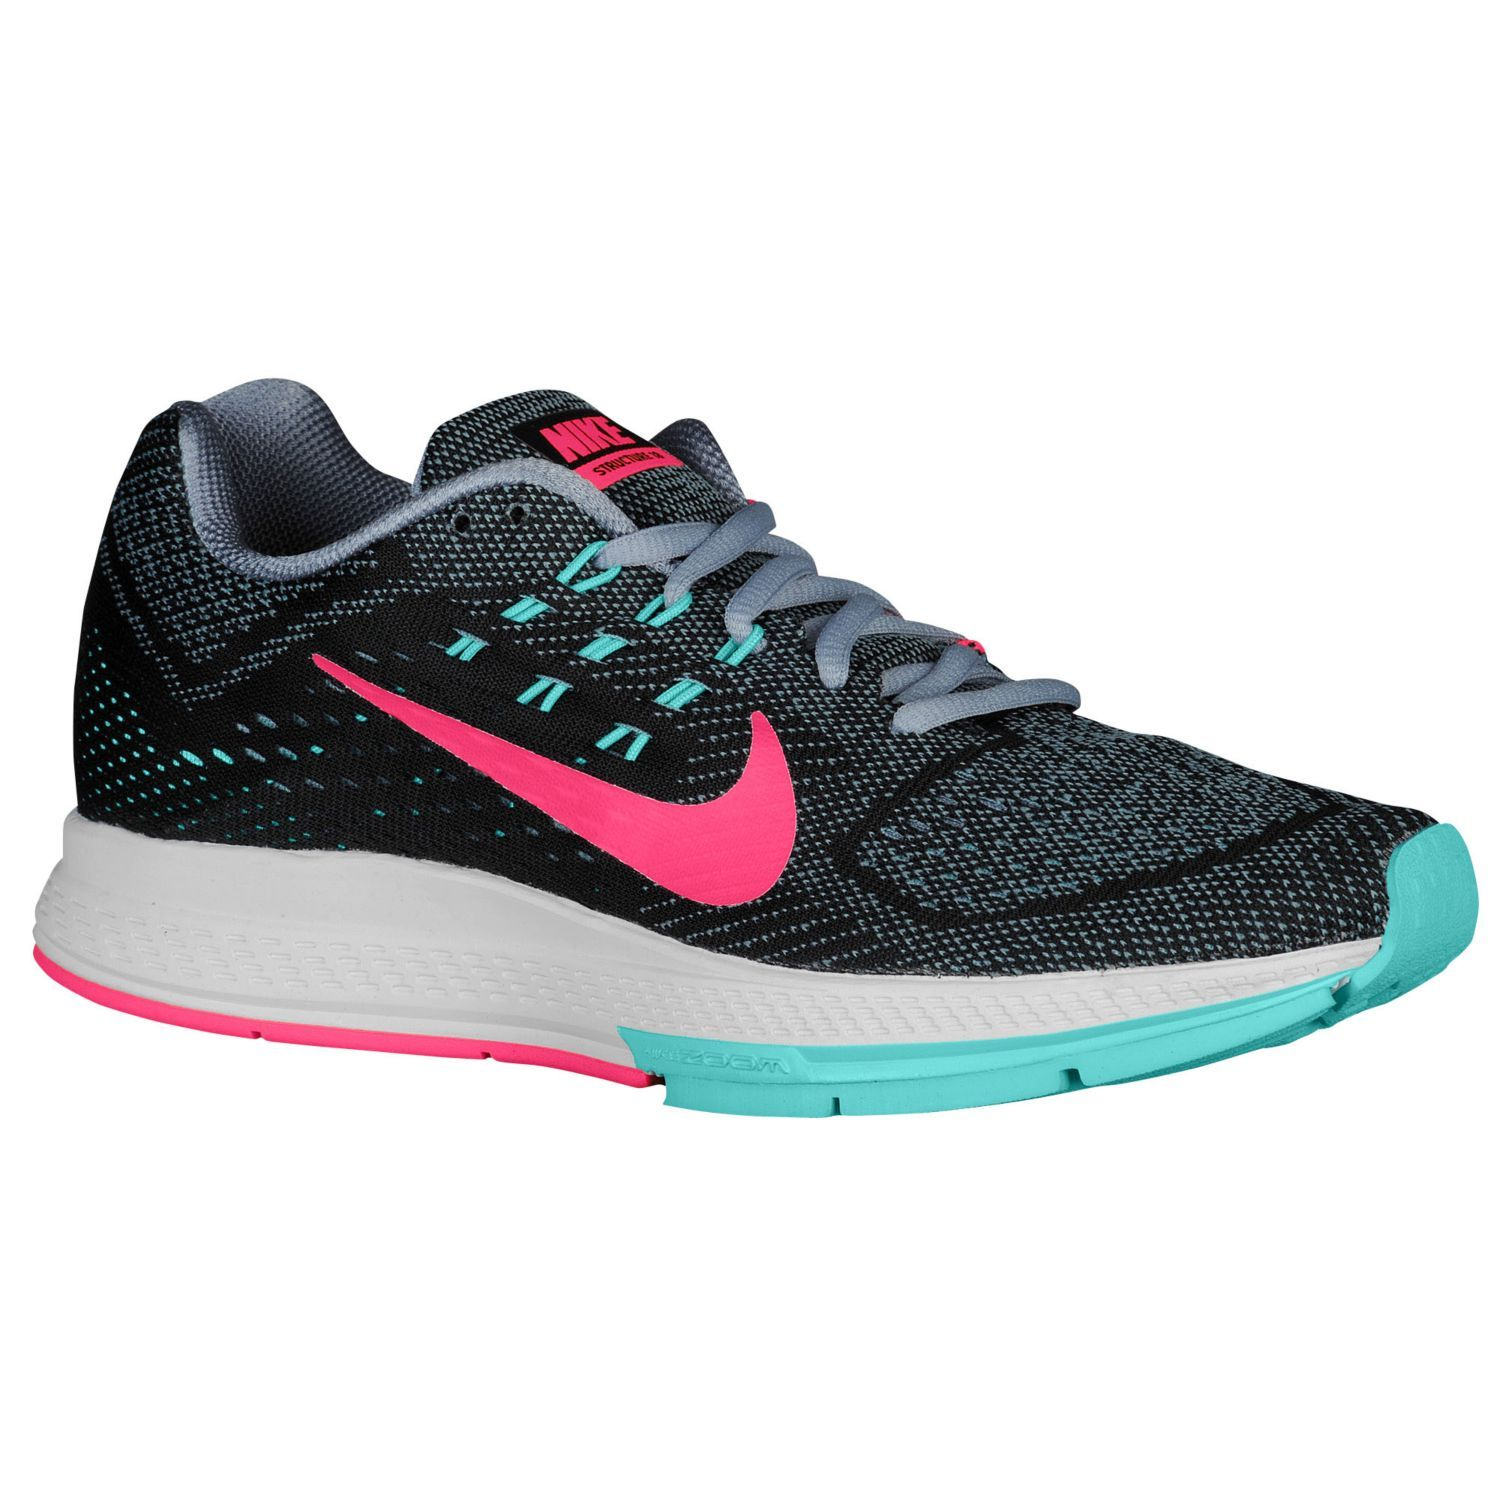 Nike Zoom Structure 18 - Women's - Running - Shoes - Magnet Grey/Black/